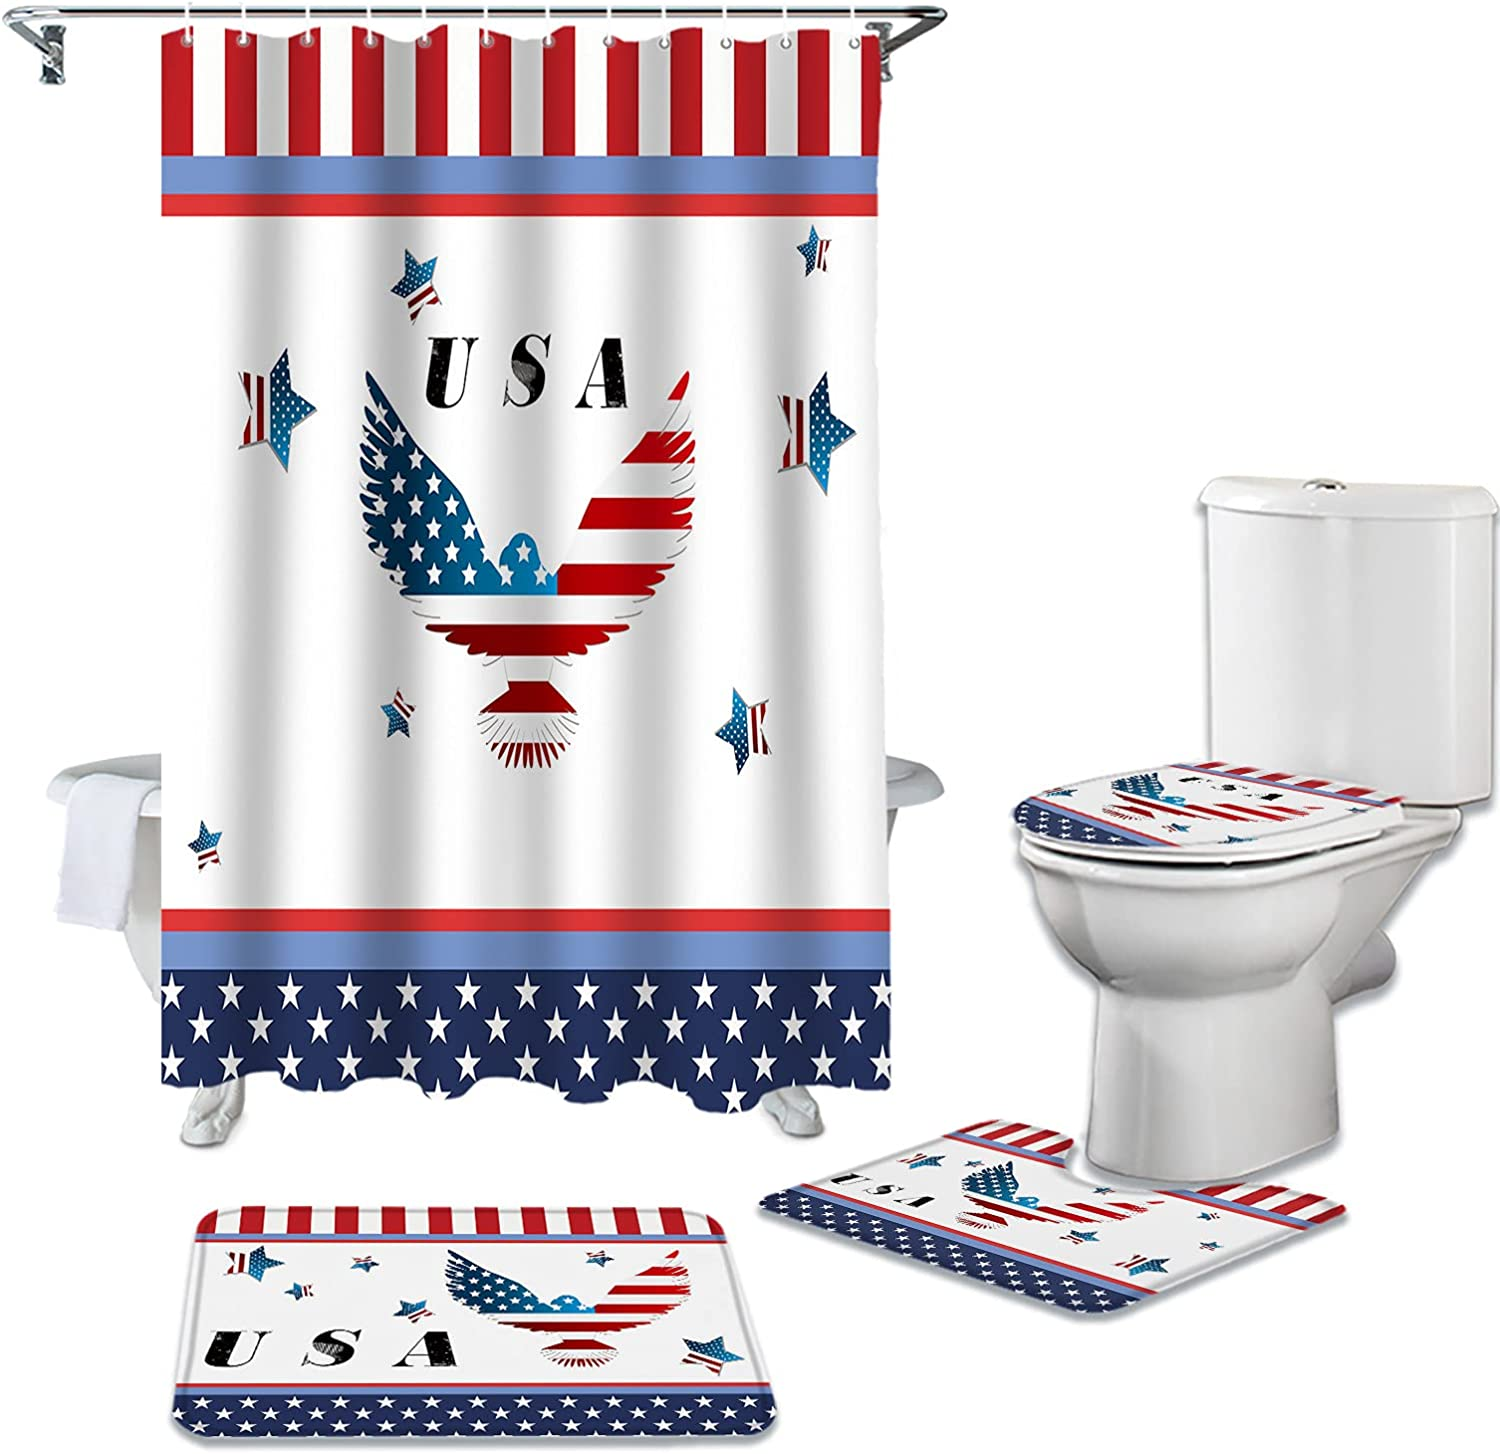 4 Piece Don't miss the campaign Shower Curtain Set Inexpensive for Rugs Bathroom Non-Slip with Toil